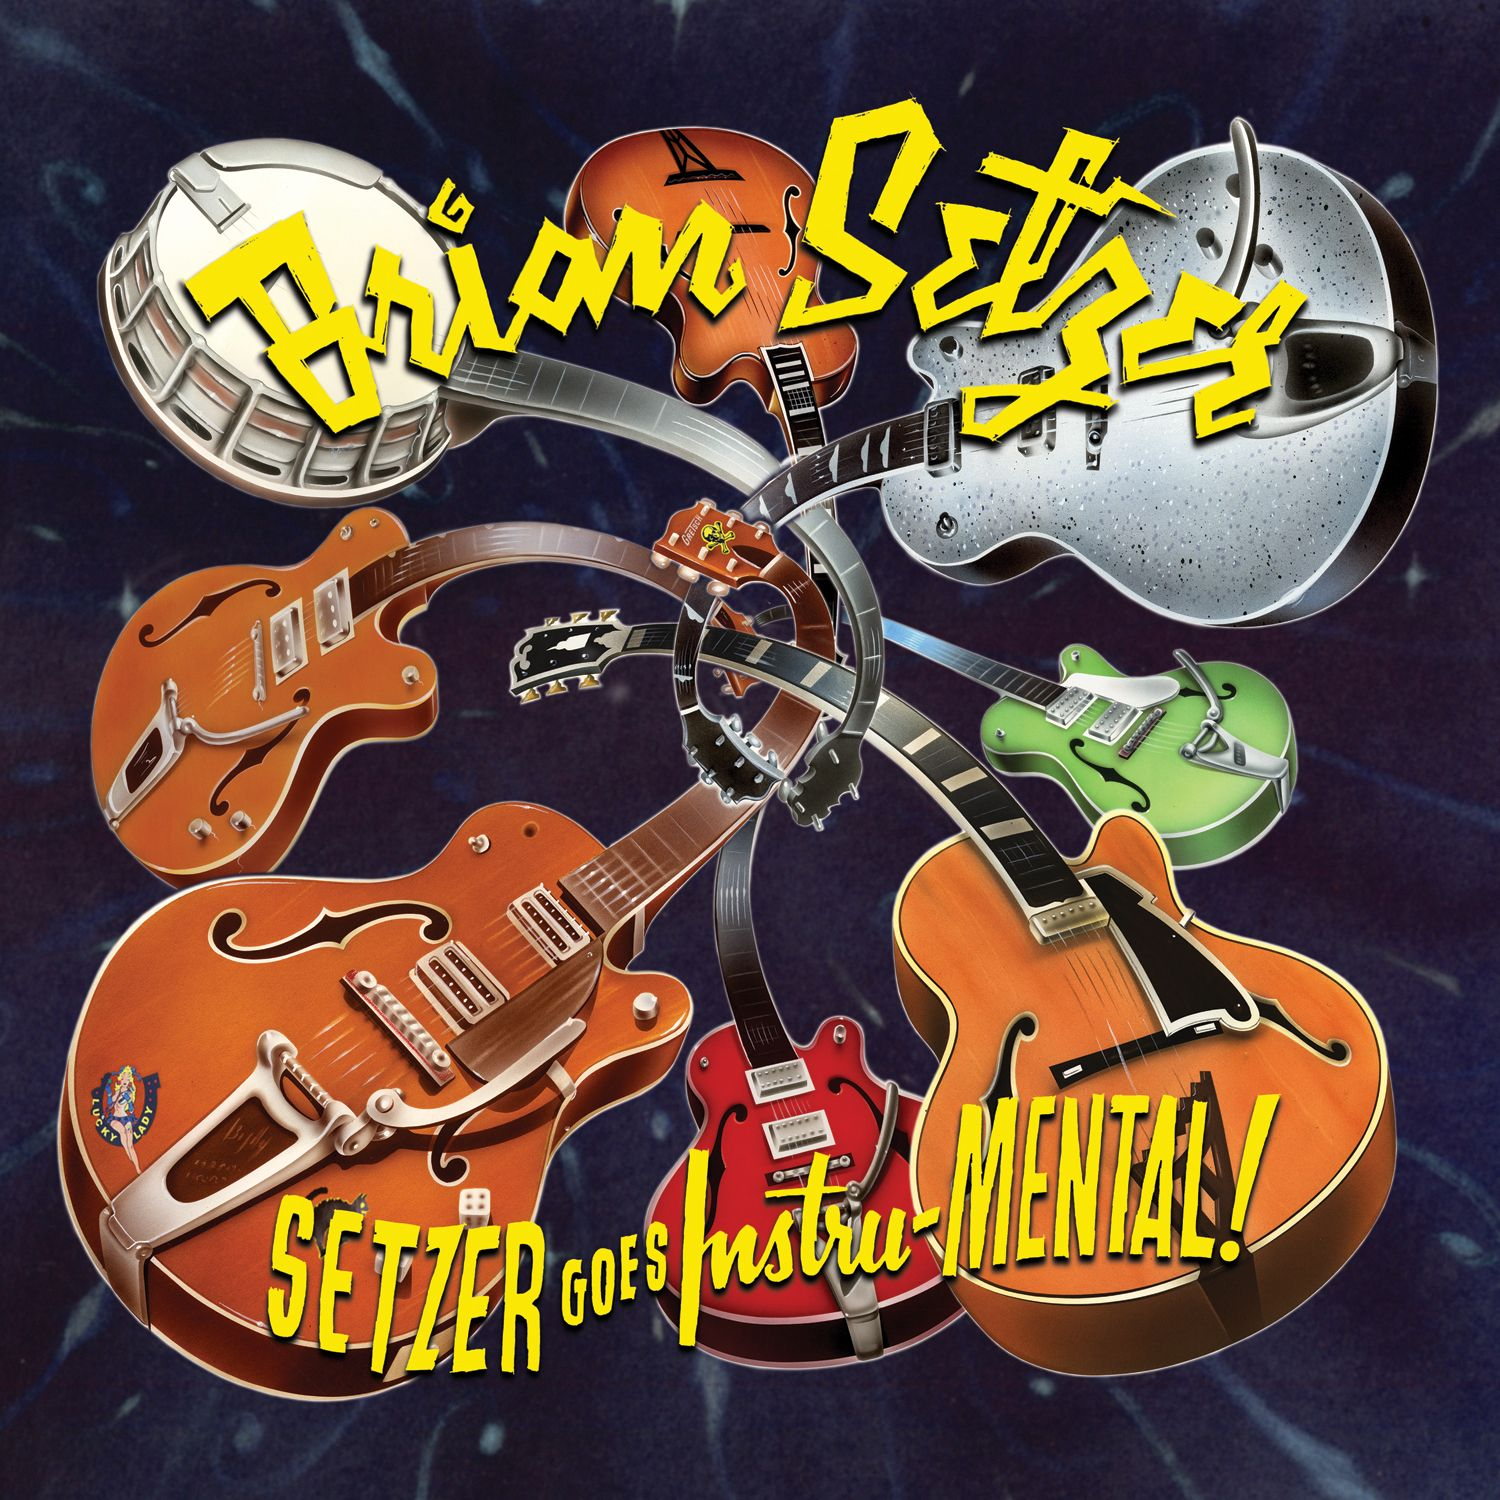 Brian Setzer Cool Album Covers Cool Things To Buy Album